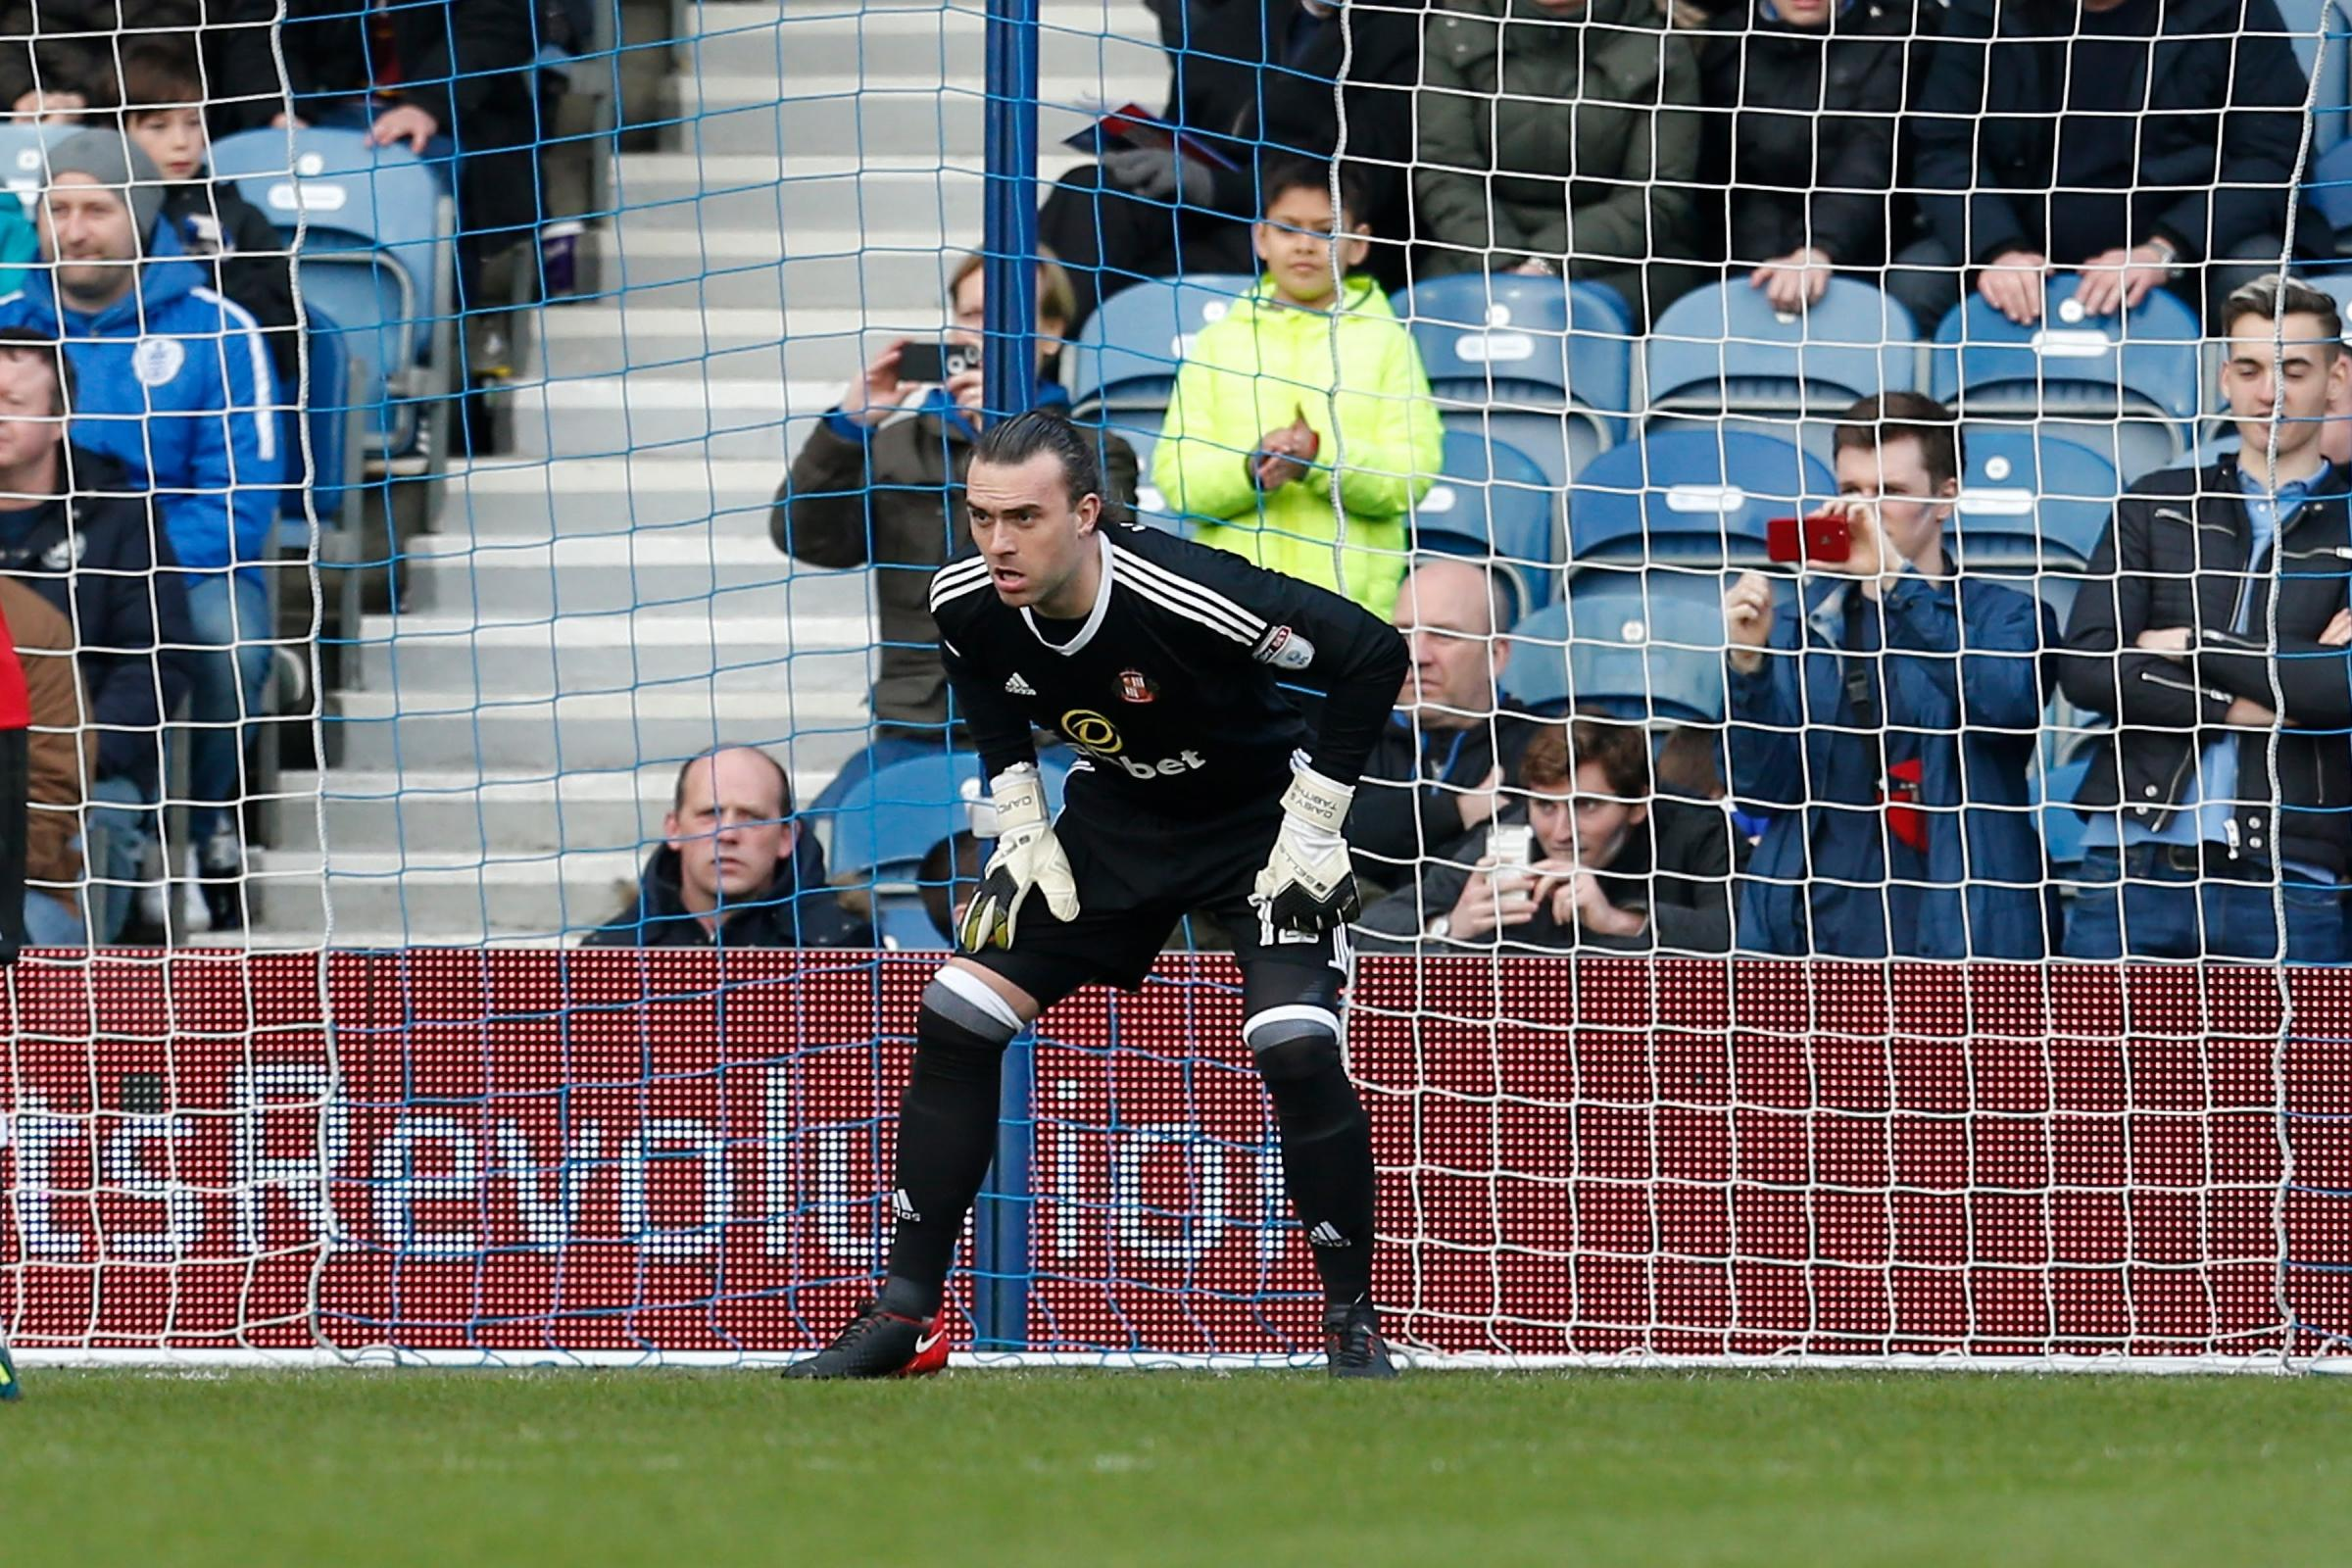 IMPRESSED: Sunderland's keeper Lee Camp had to come on and he did well